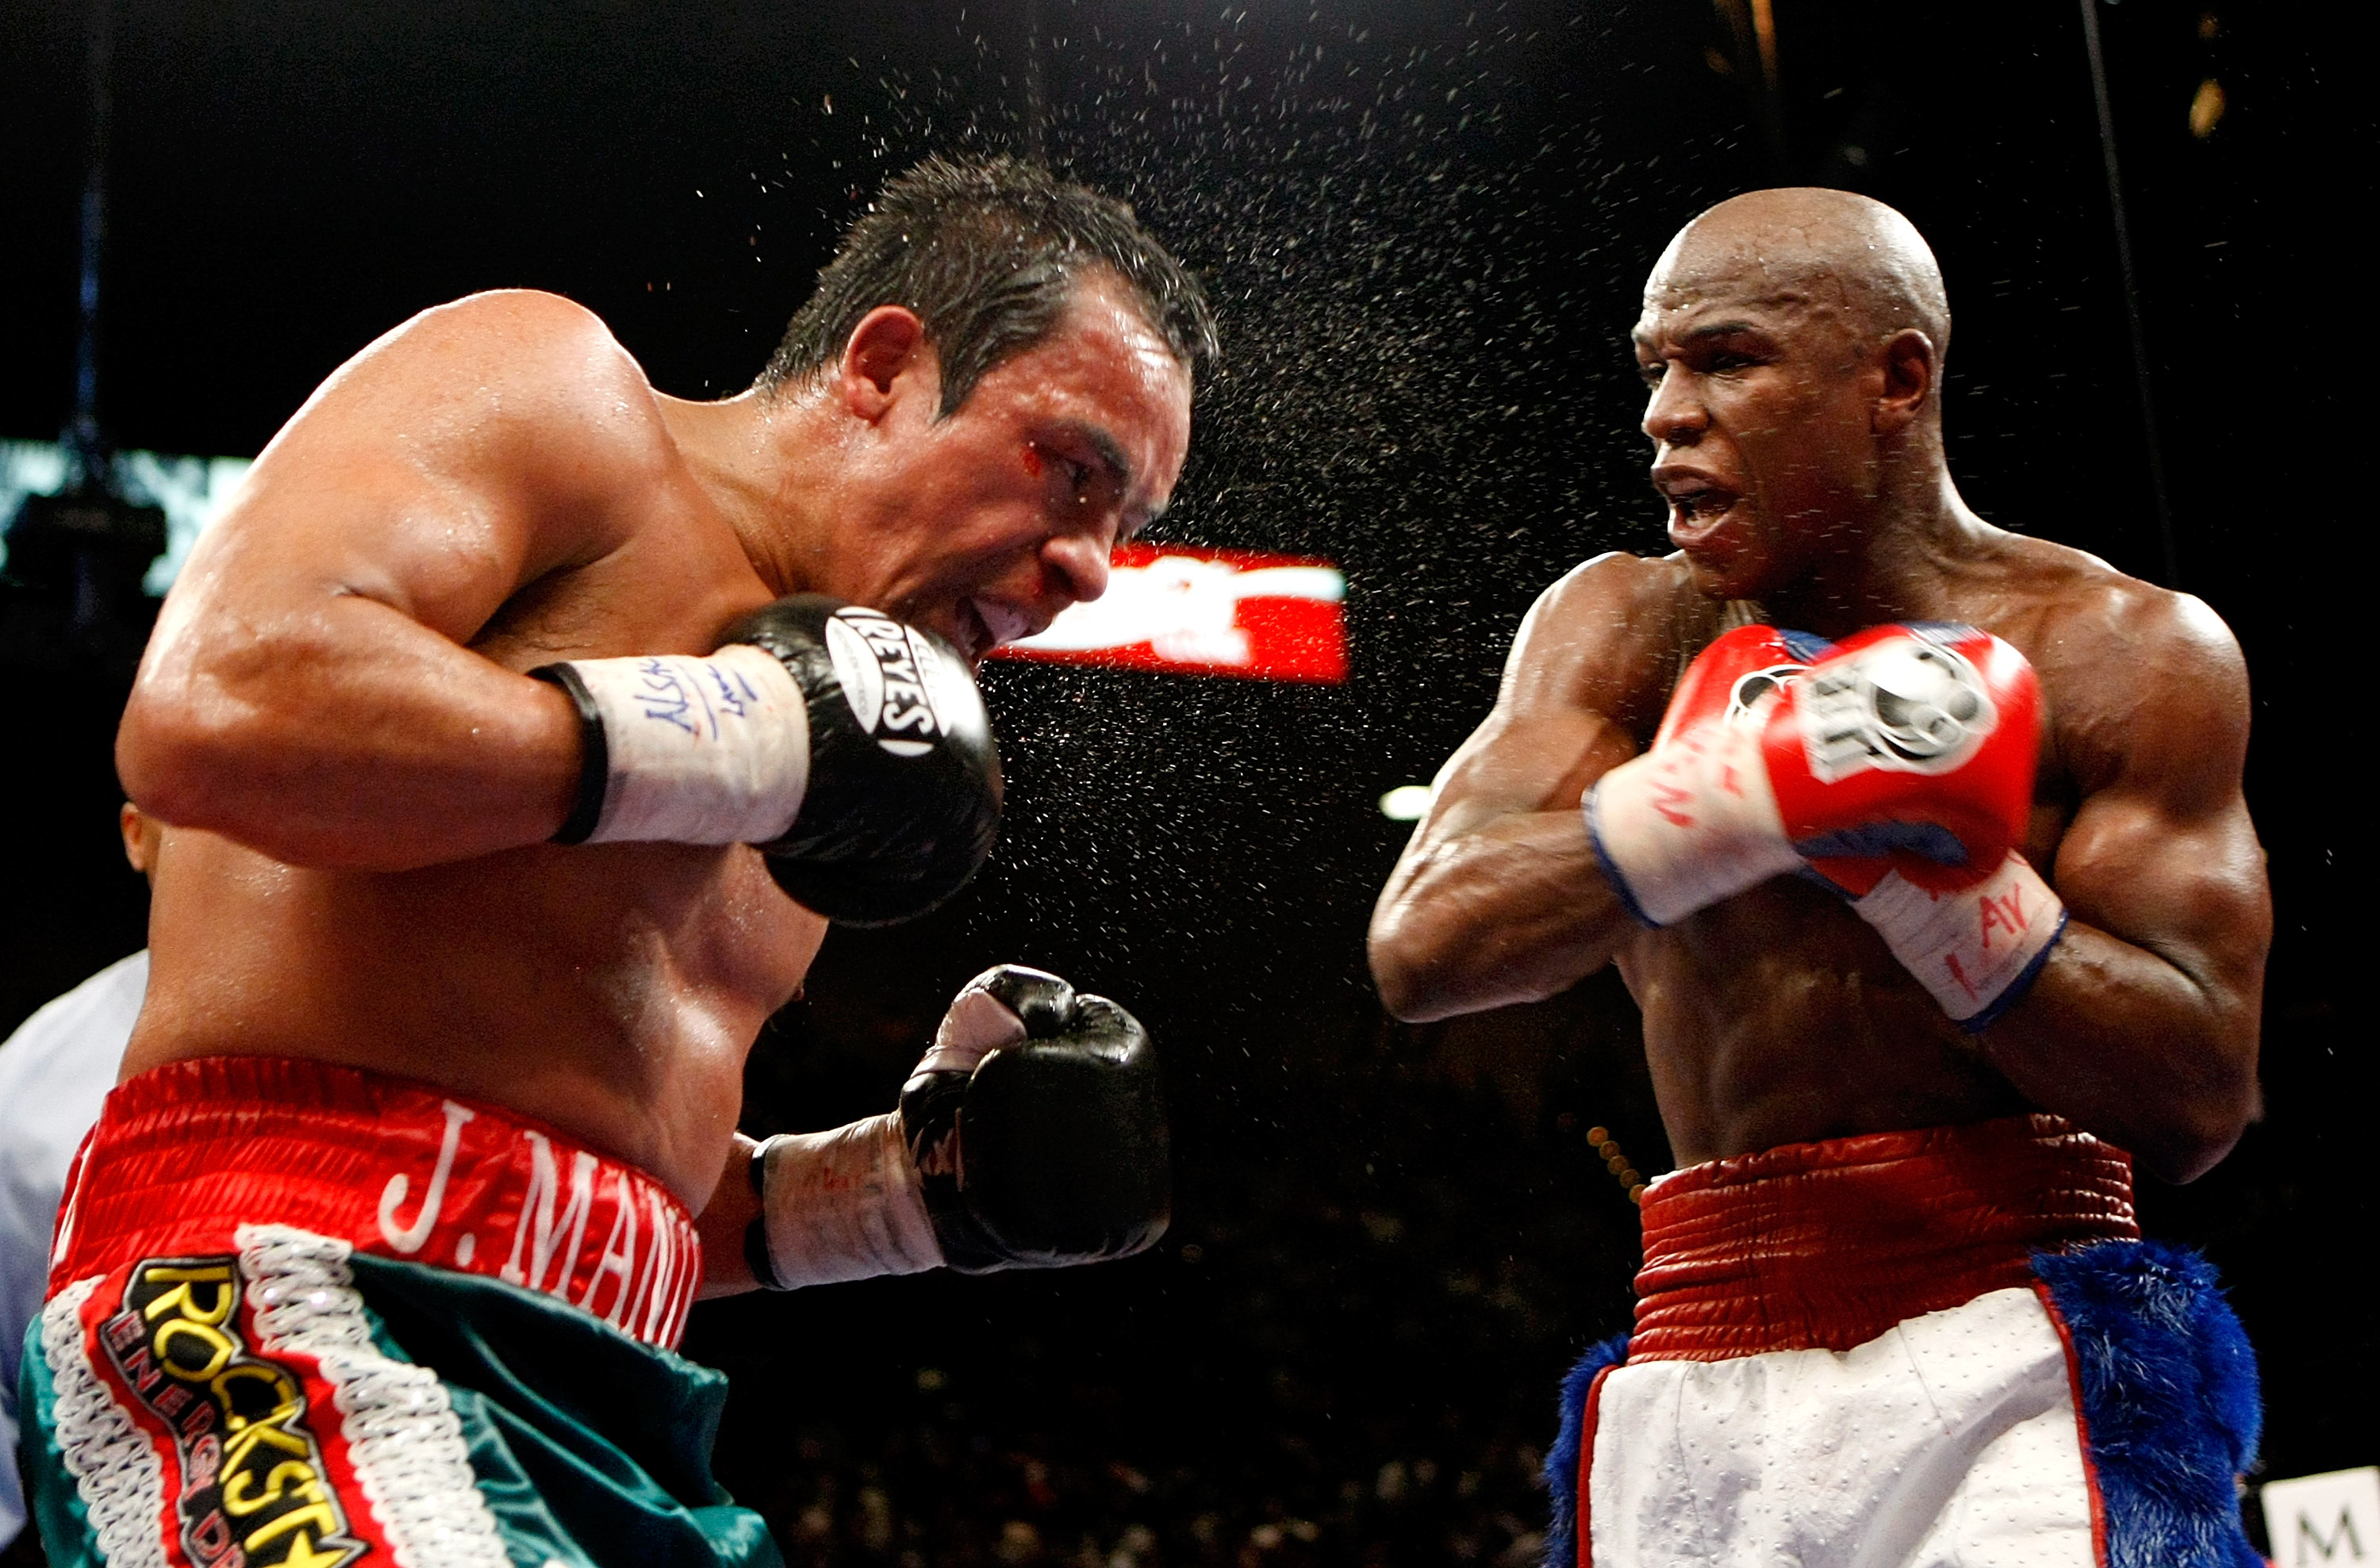 LAS VEGAS - SEPTEMBER 19:  Juan Manuel Marquez (L) and Floyd Mayweather Jr. battle in the ninth round of their fight at the MGM Grand Garden Arena September 19, 2009 in Las Vegas, Nevada. Mayweather won by unanimous decision.  (Photo by Ethan Miller/Getty